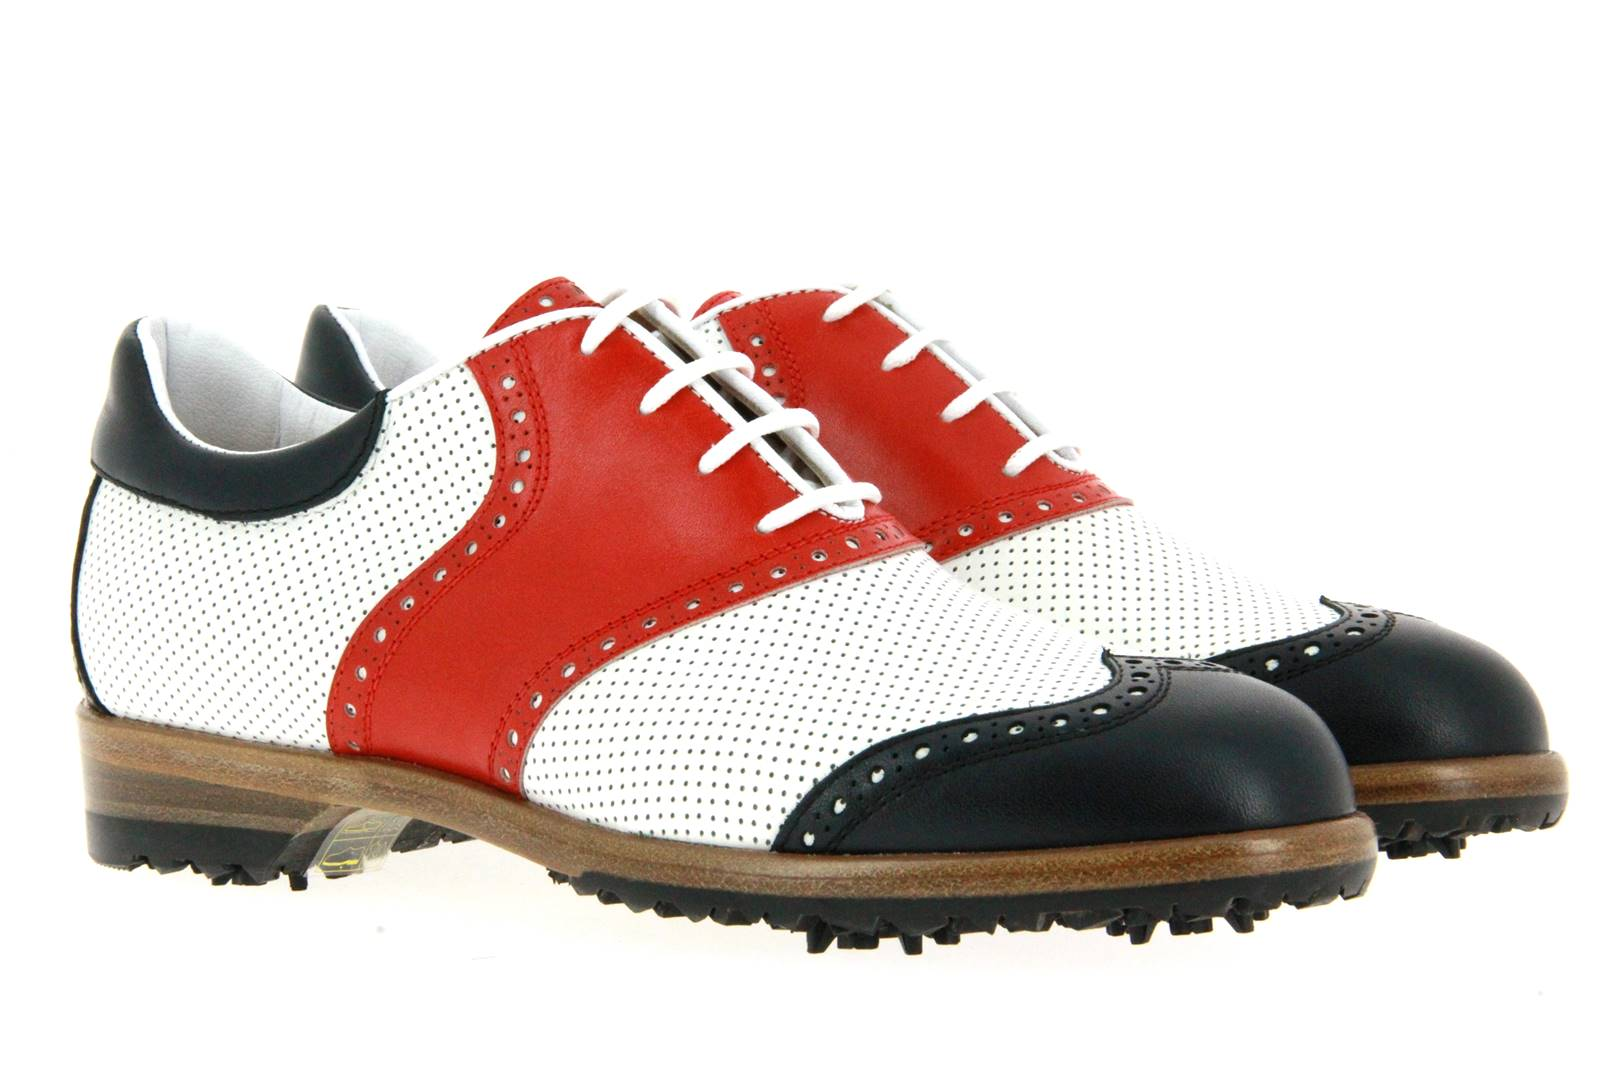 Tee Golf Shoes women's - golf shoe SUSY PERFORATO BLU BIANCO ROSSO